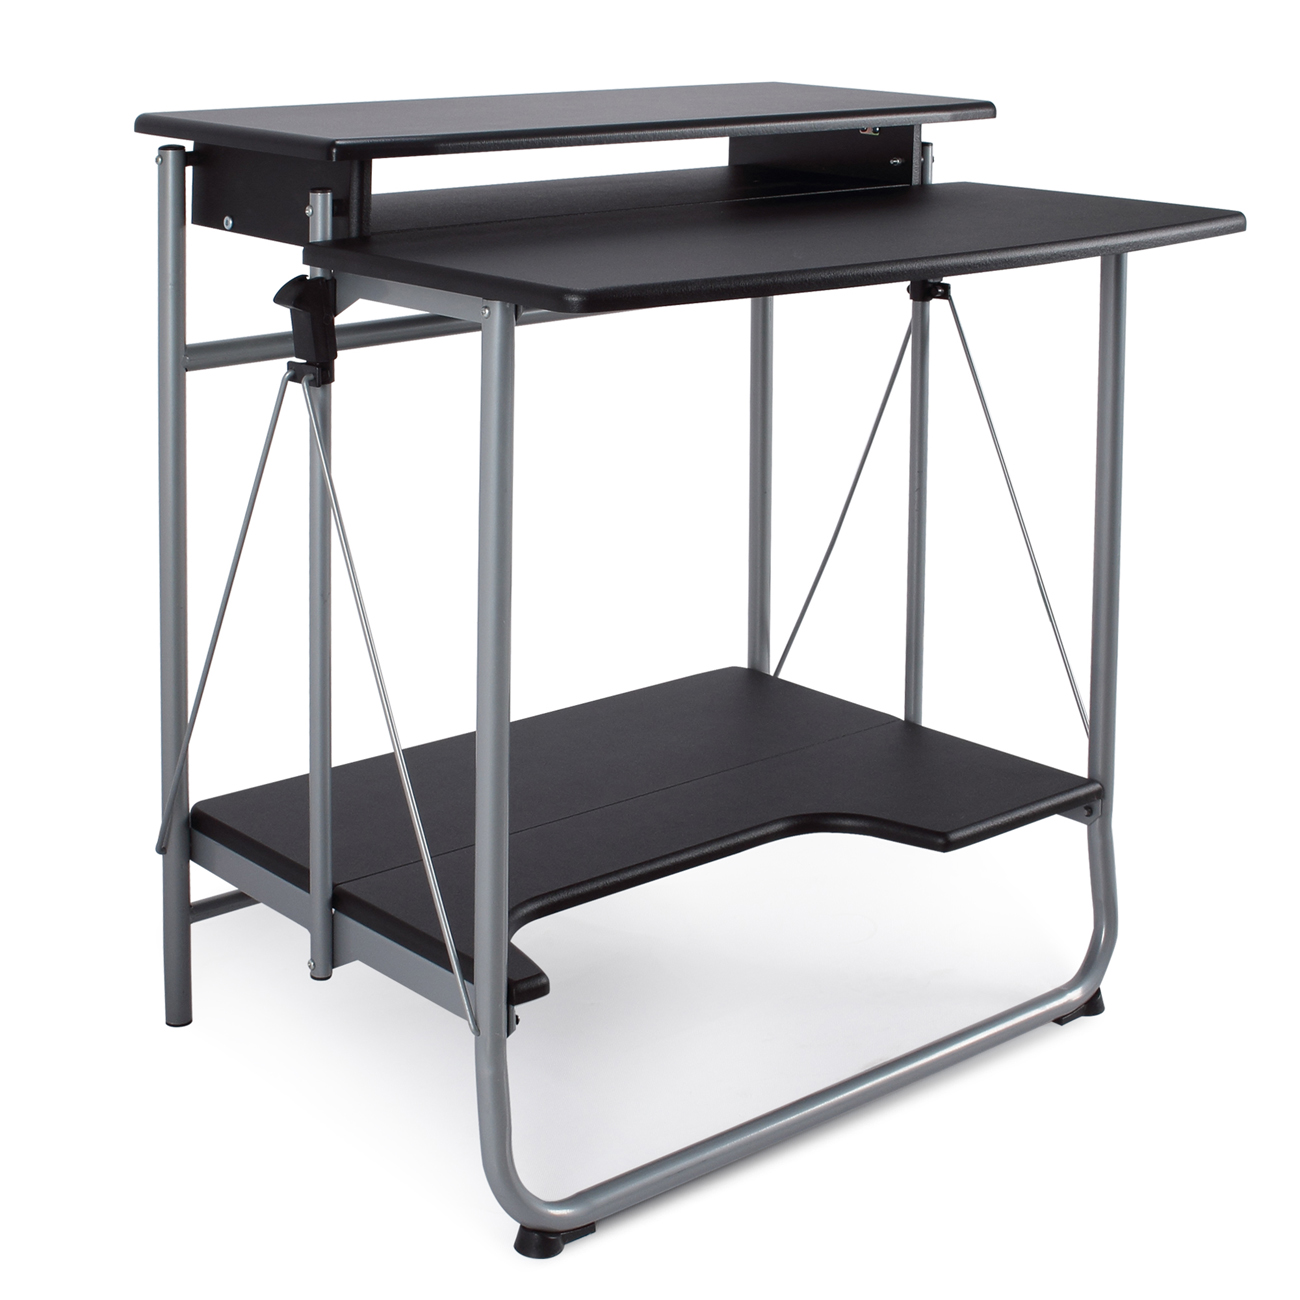 Superieur Details About Foldable Computer Writing Desk With Keyboard Tray And Lower  Storage Shelf, Black